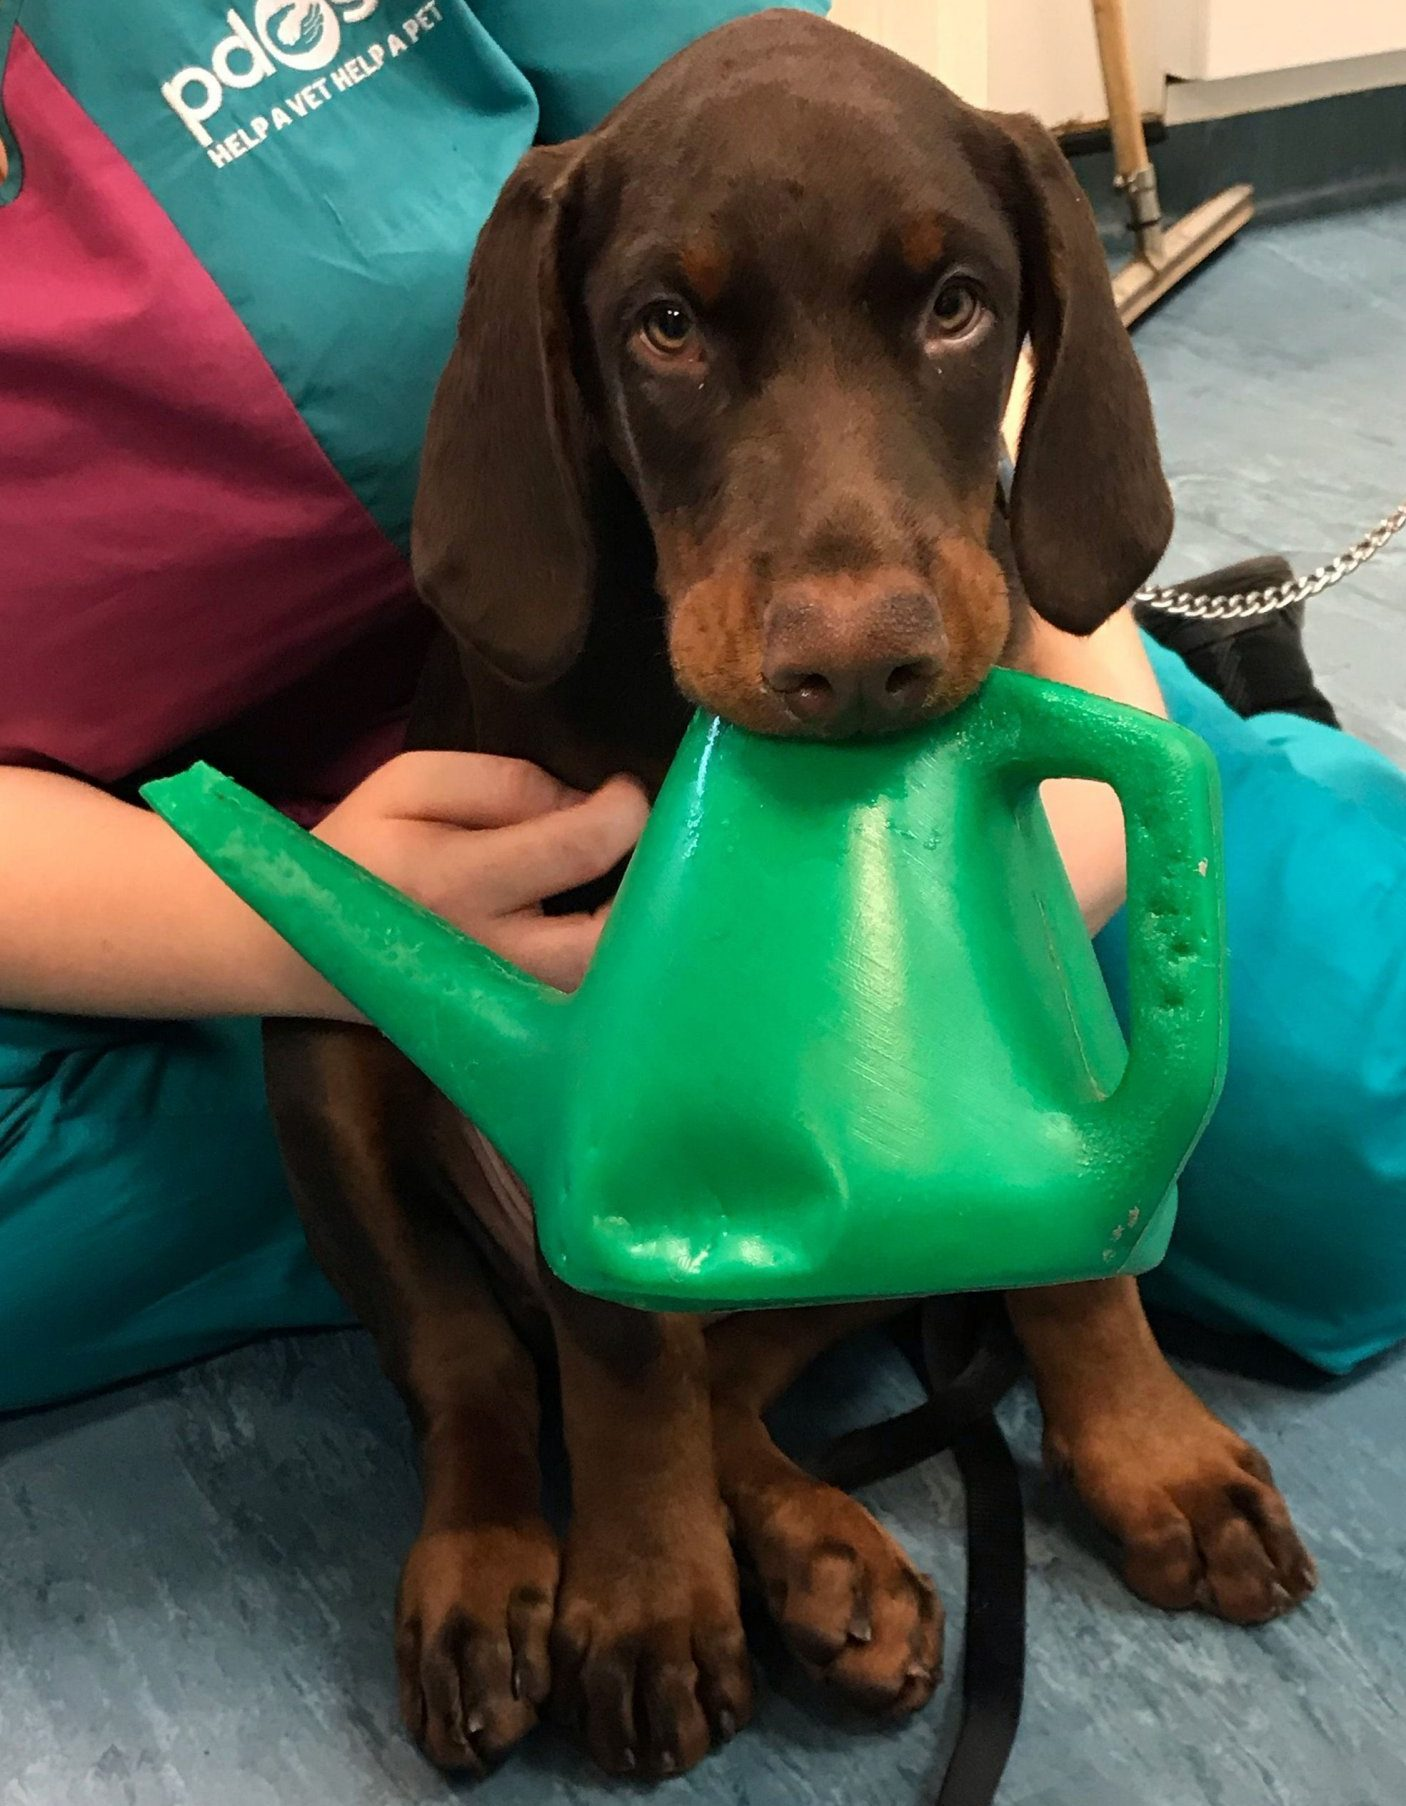 Poor puppy got stuck in watering can after watching owner tend to plants